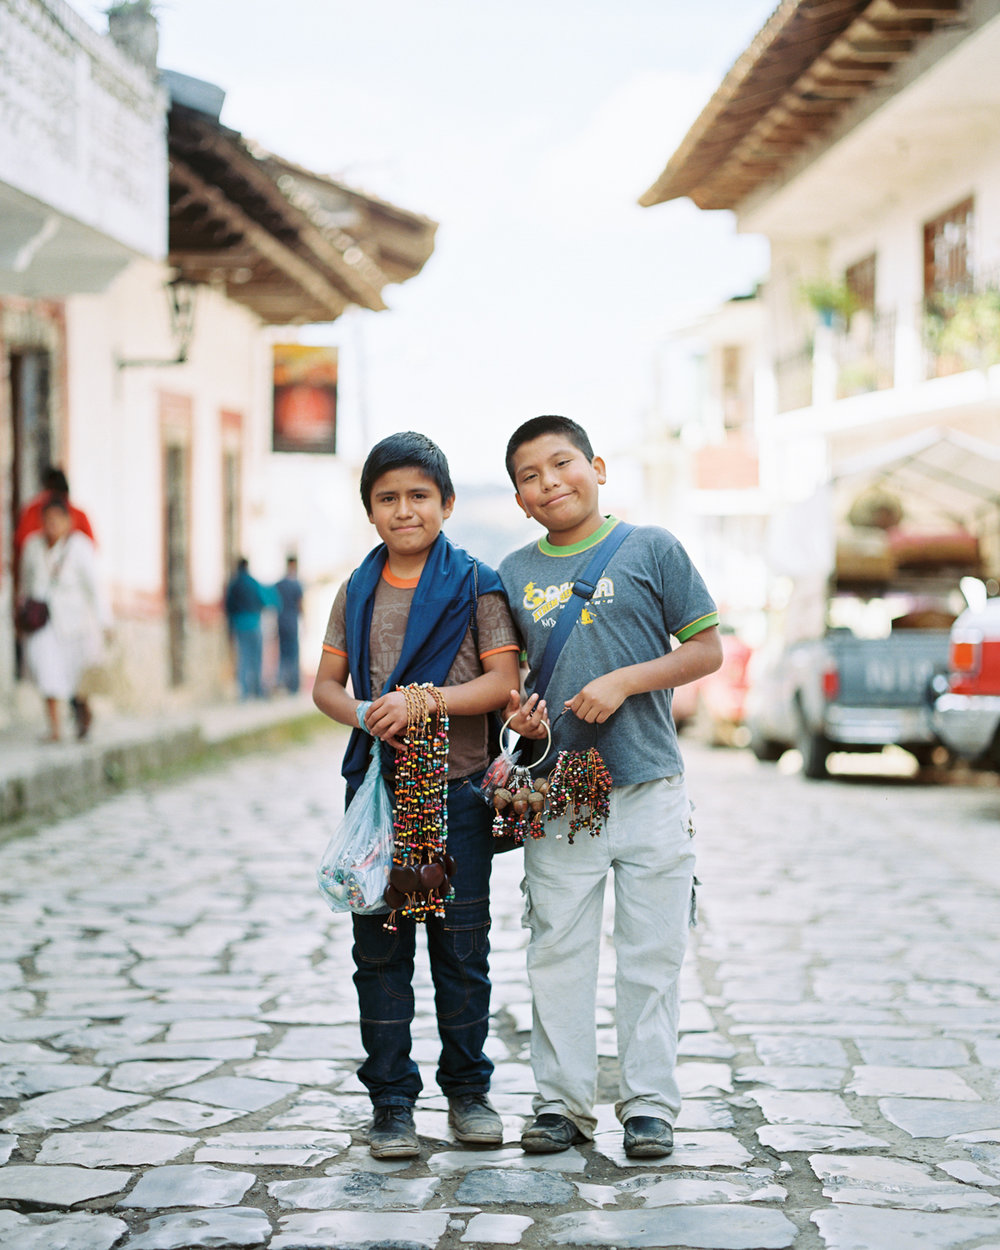 Local Boys Cuetzalan, Puebla Mexico  2015